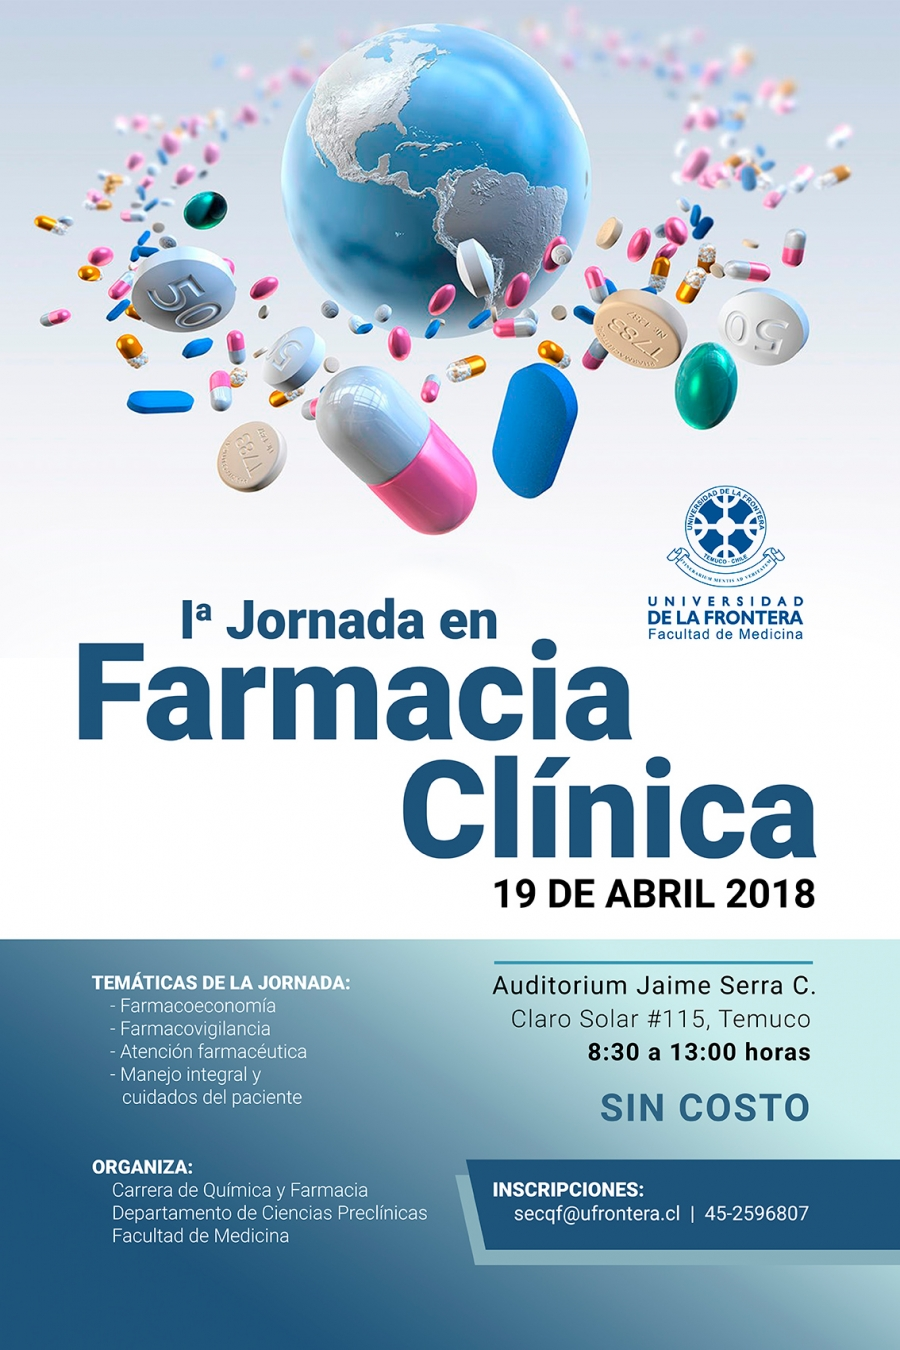 2018-04-02-farmacia-clinica_XL.jpg